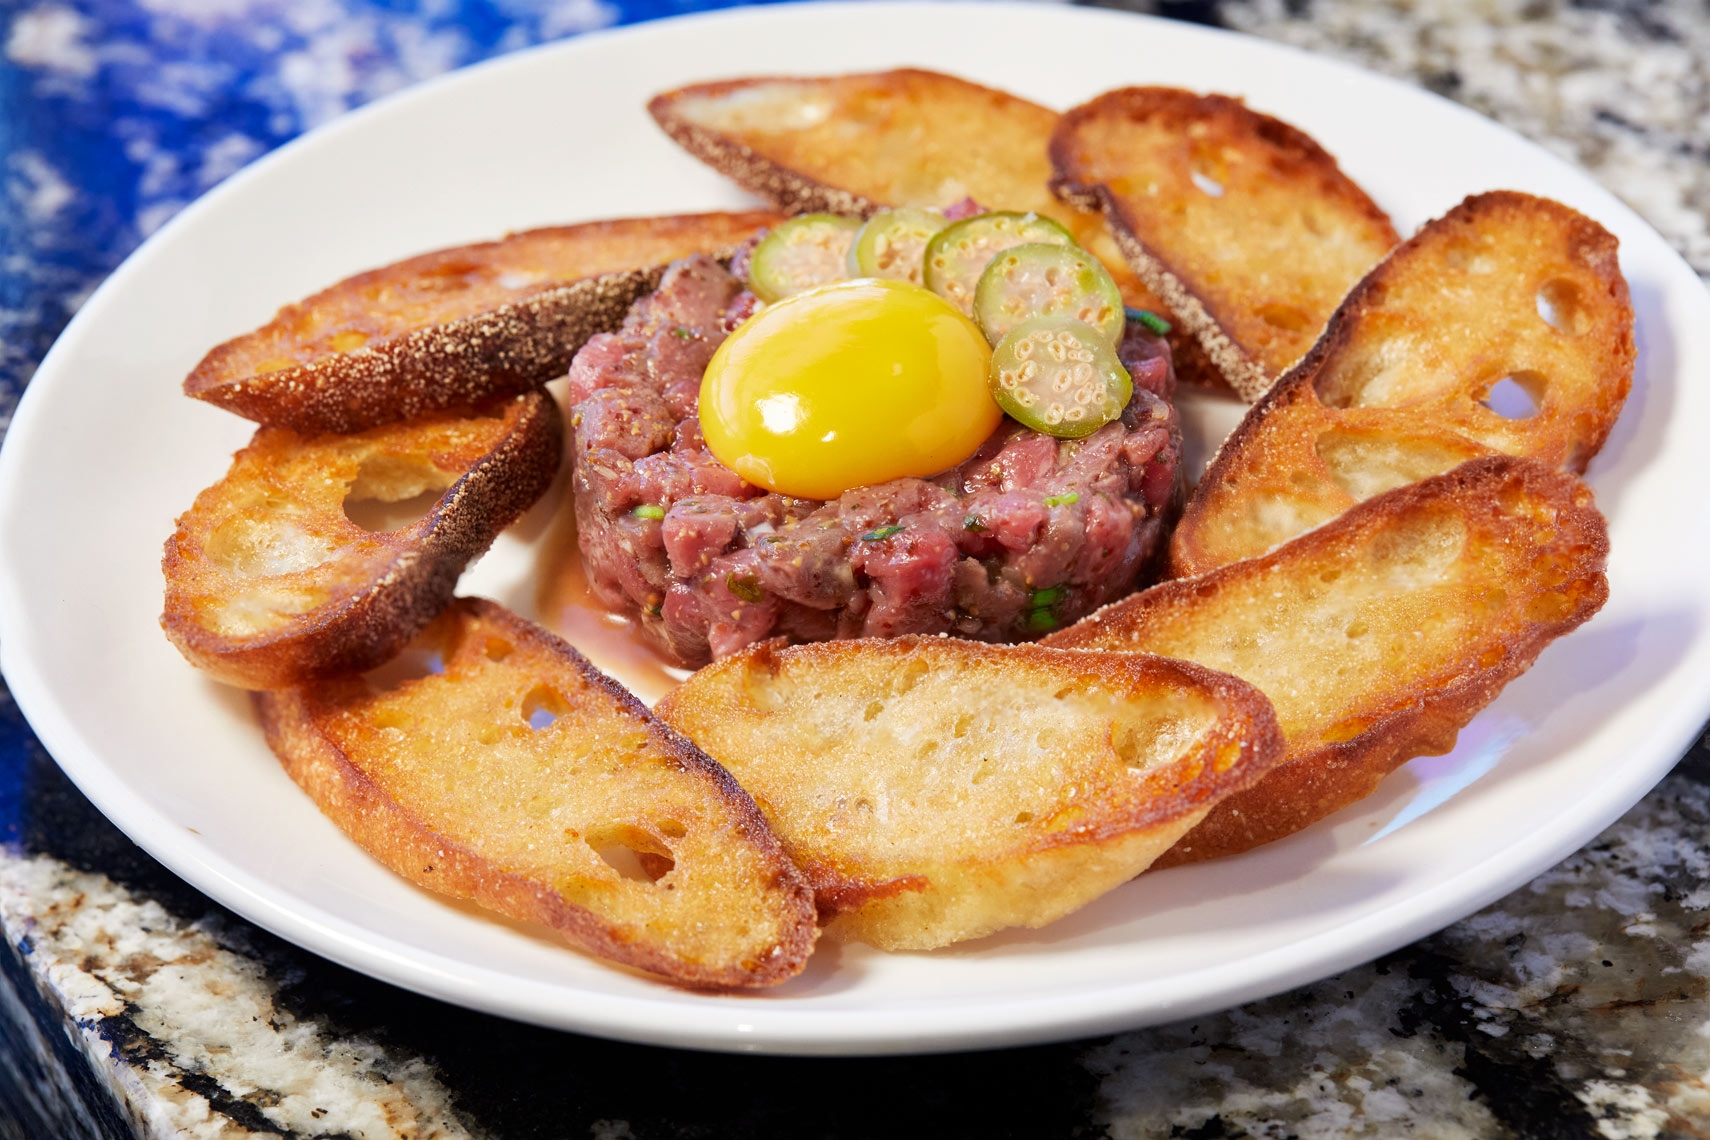 Beef Tartar with raw egg appetizer at The Chef and I restaurant in Nashville Tennessee